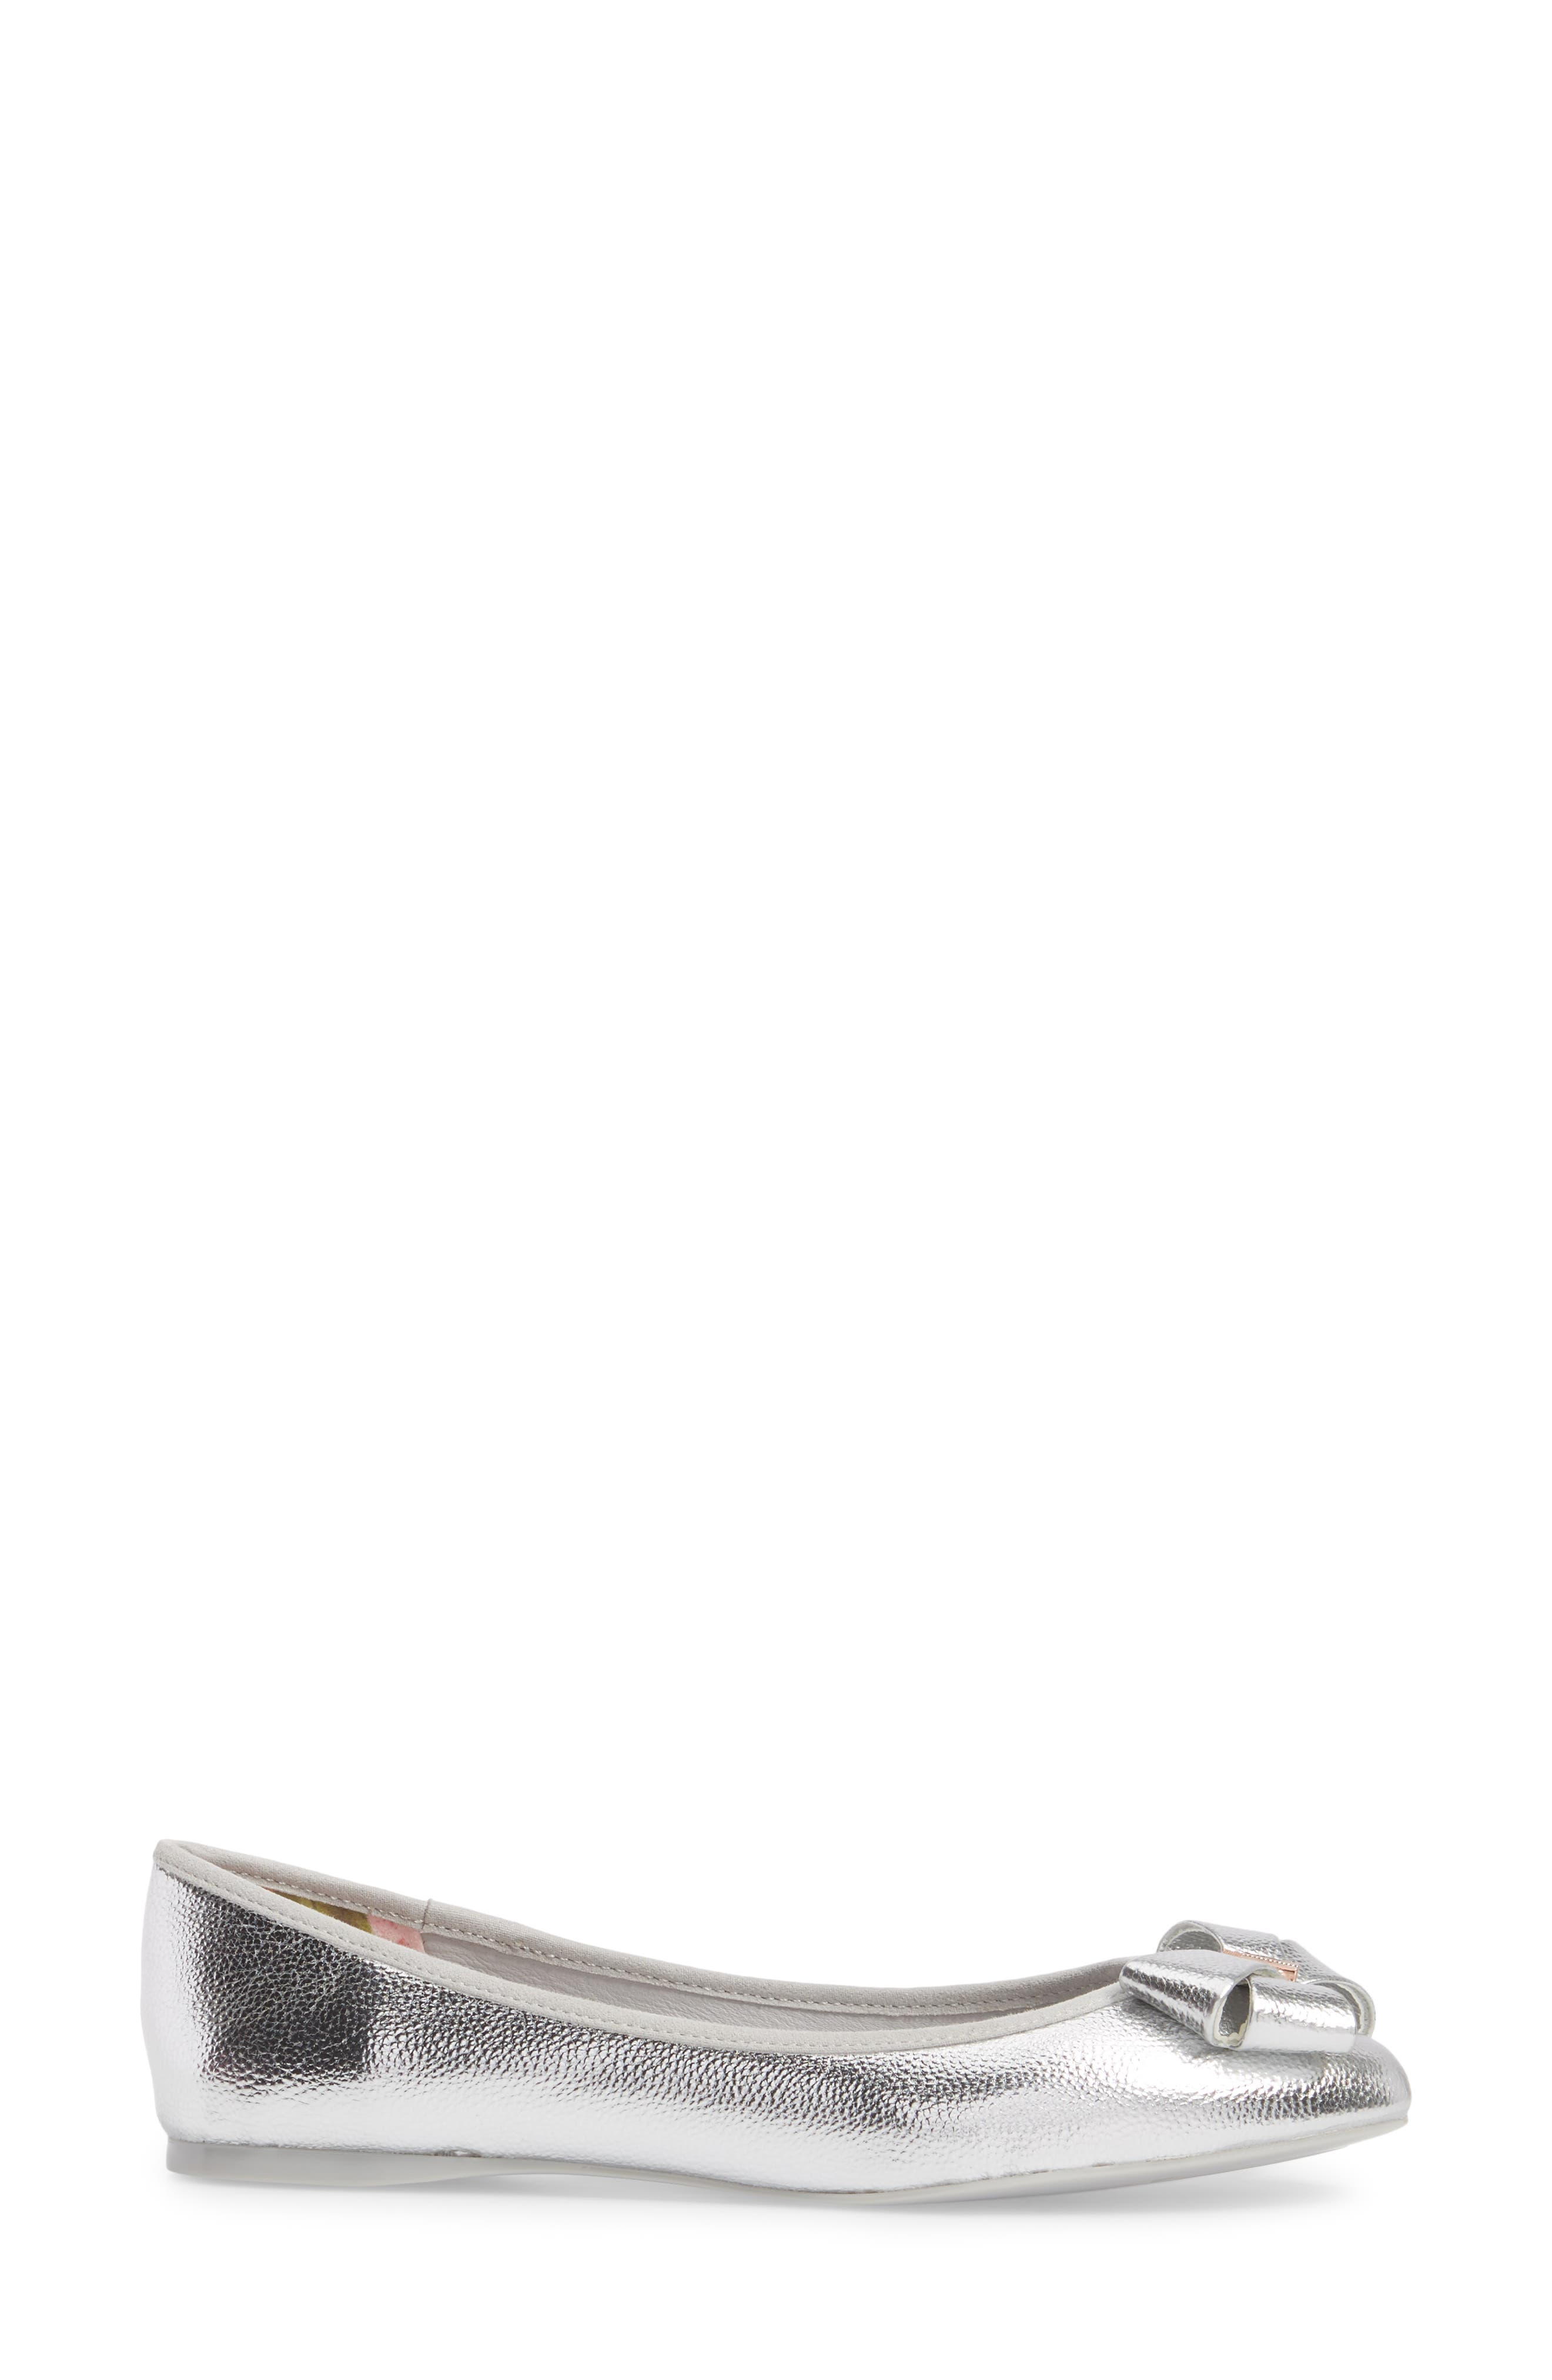 Immet Ballet Flat,                             Alternate thumbnail 3, color,                             SILVER